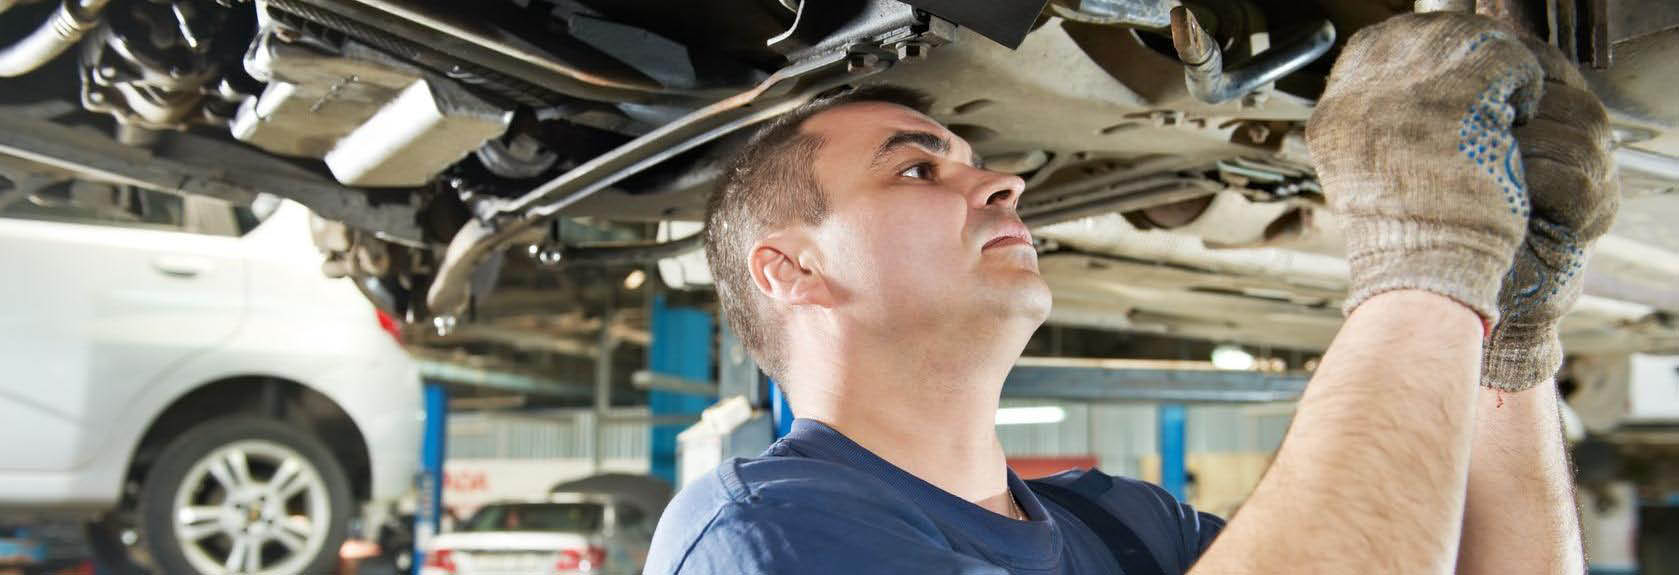 Schlee Bros. Automotive in San Rafael, CA - mechanic working on undercarriage of vehicle banner ad